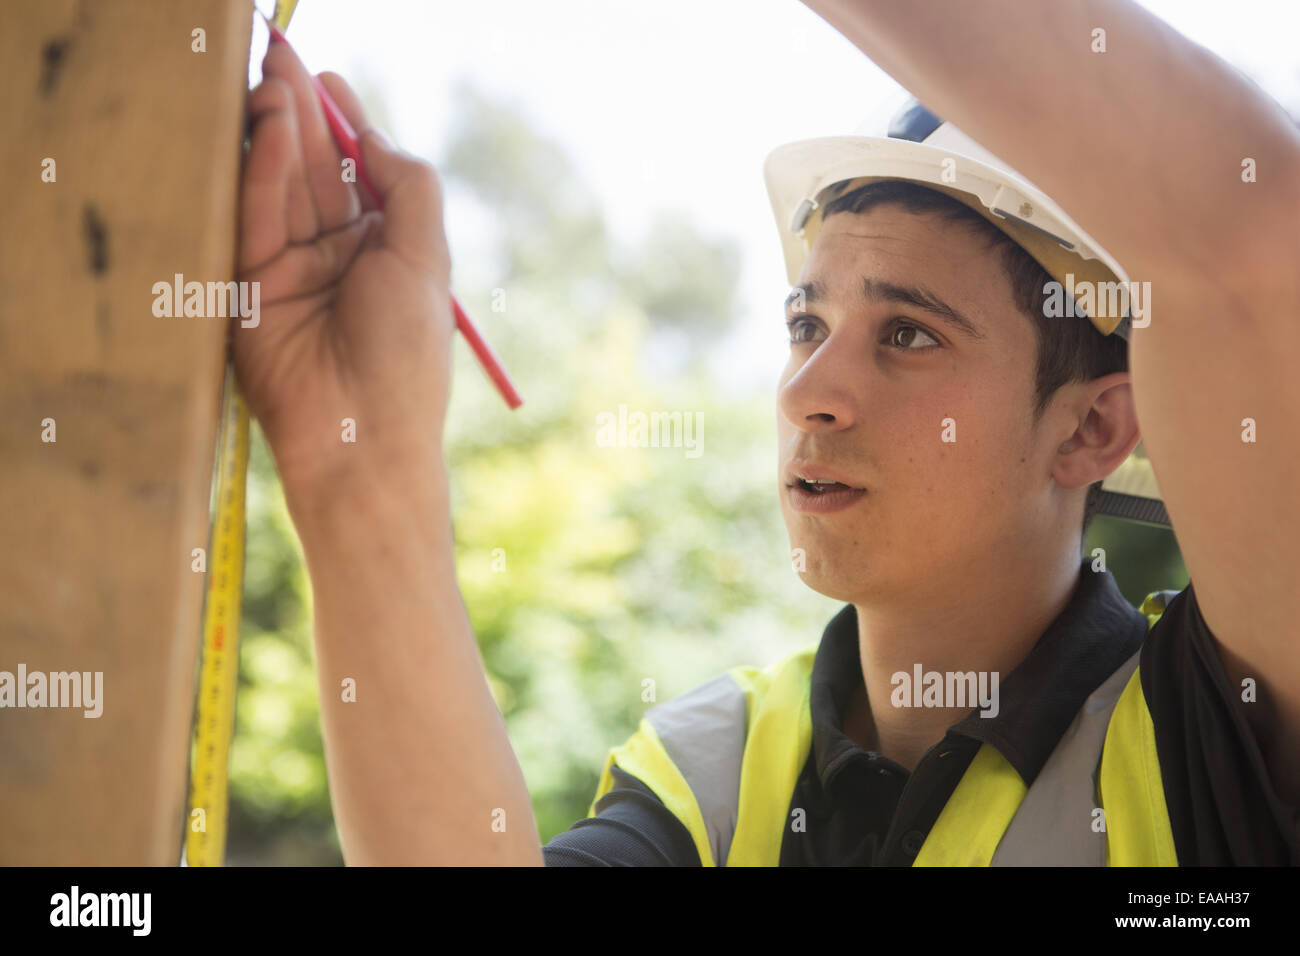 Construction worker wearing high visibility vest and safety helmet. - Stock Image